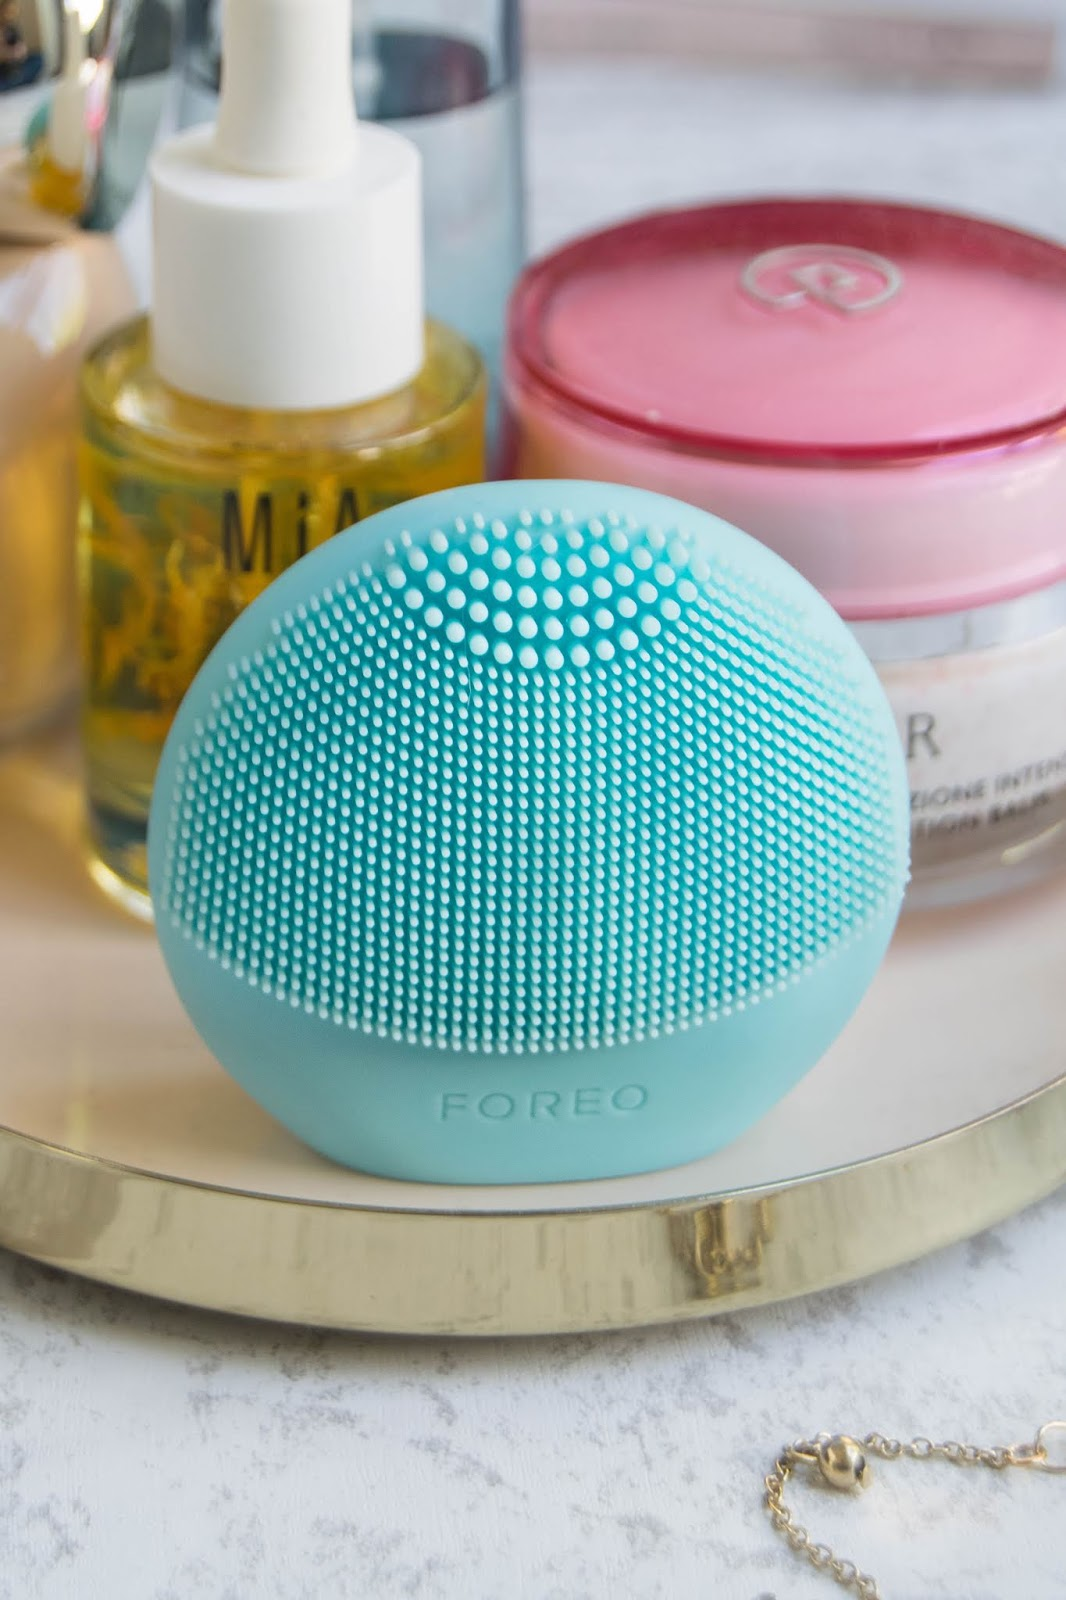 foreo luna play plus cosmetispt